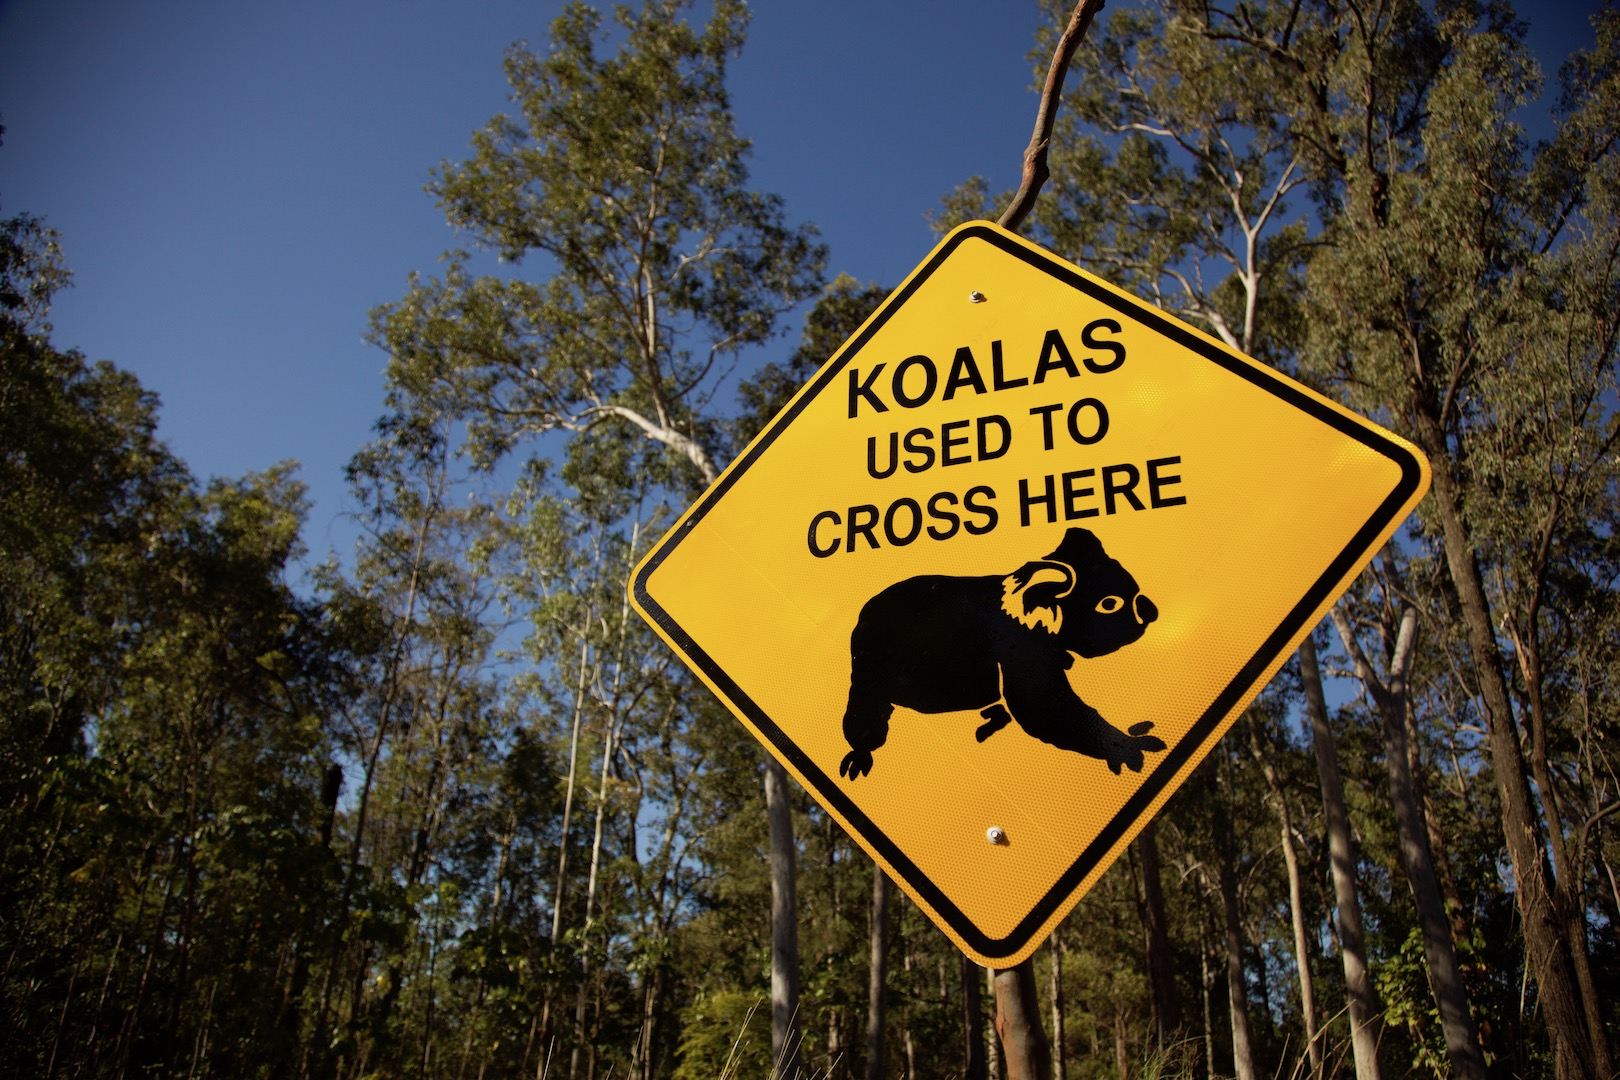 Koalas used to cross here IMG_4626